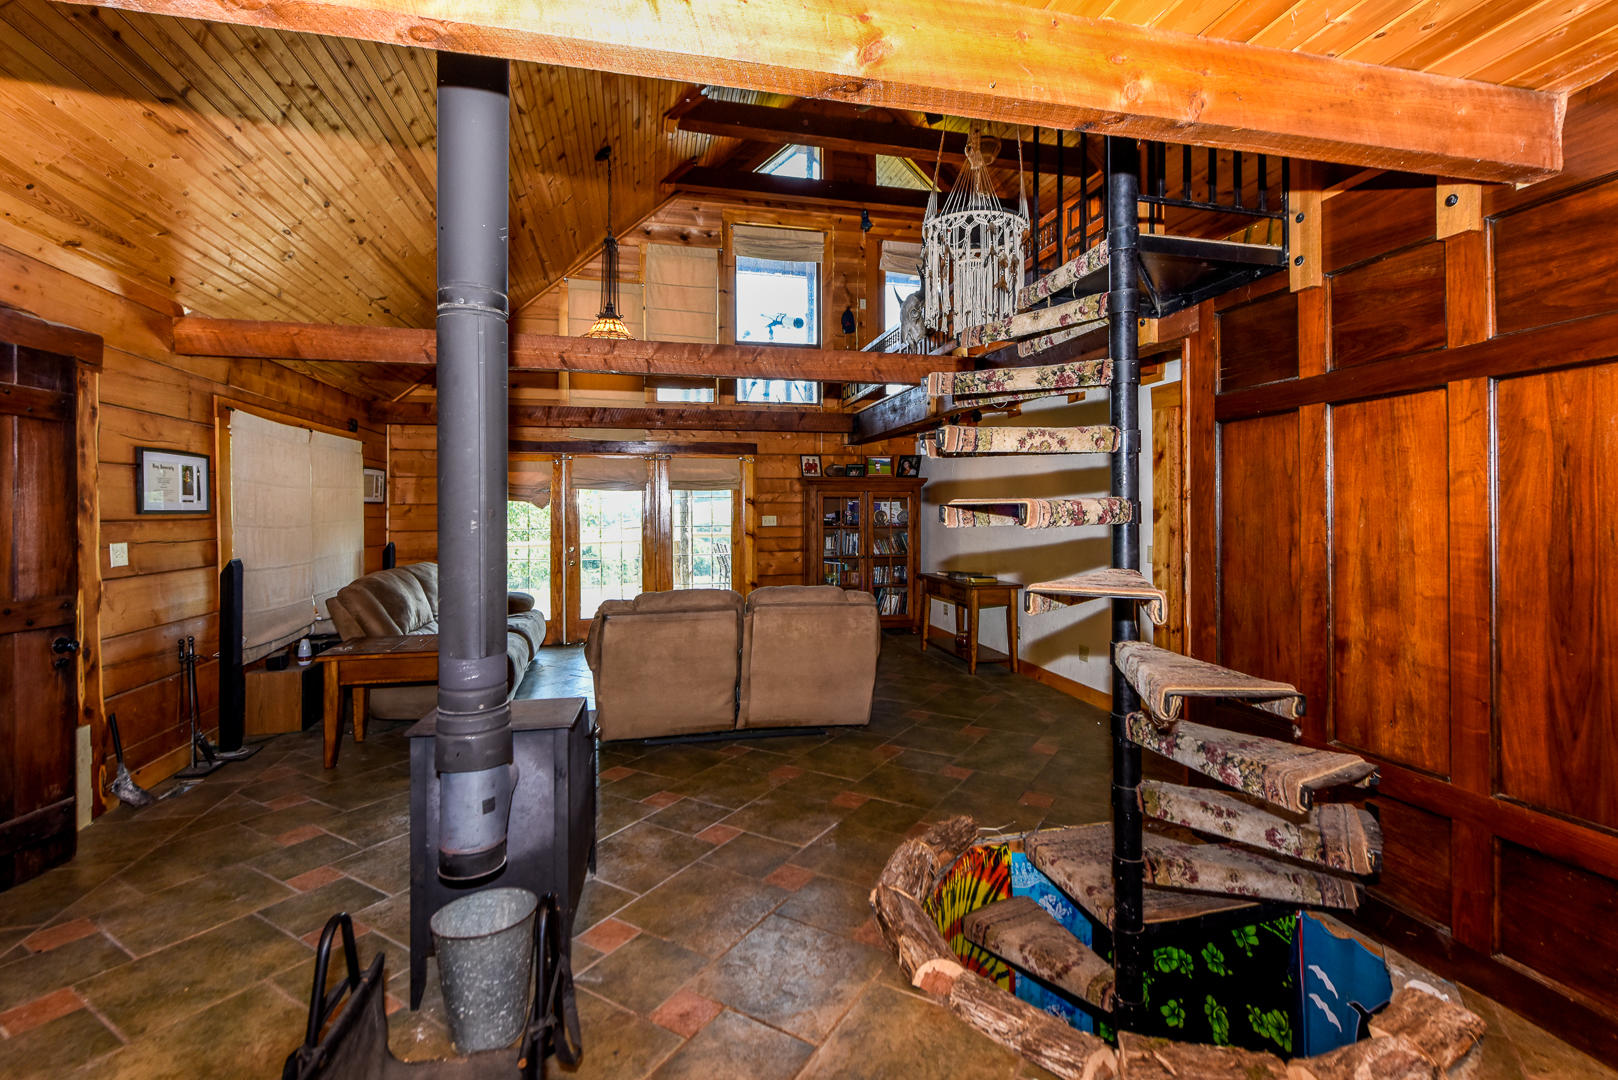 3560 Old Lowes Ferry Rd: